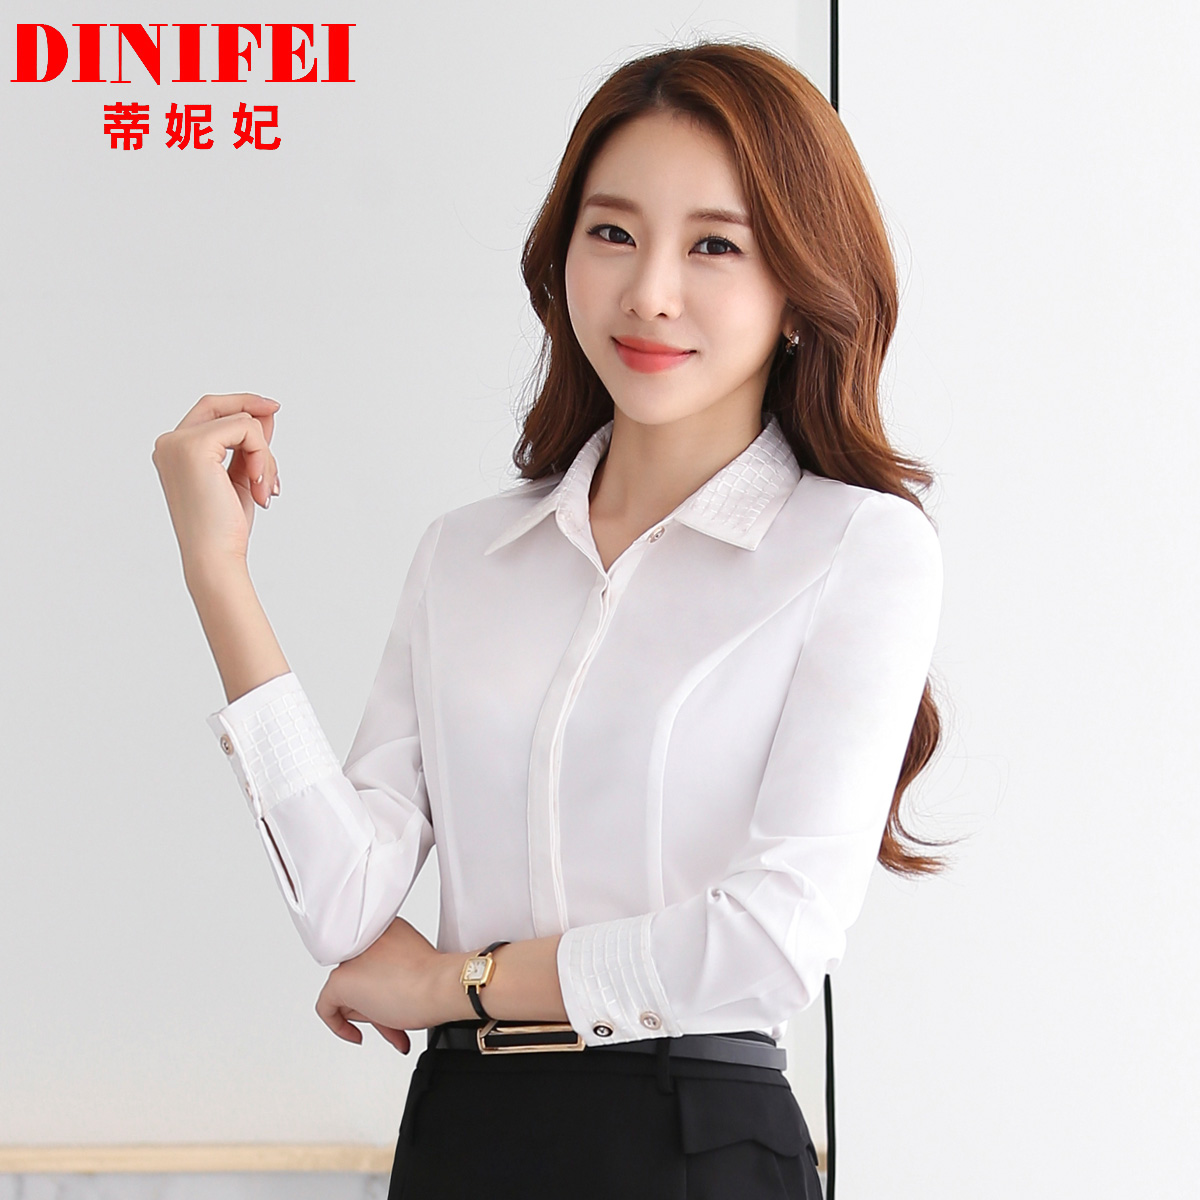 Dini fei 2016 autumn and winter wear long sleeve white shirt female occupational tooling white shirt dress overalls are installed